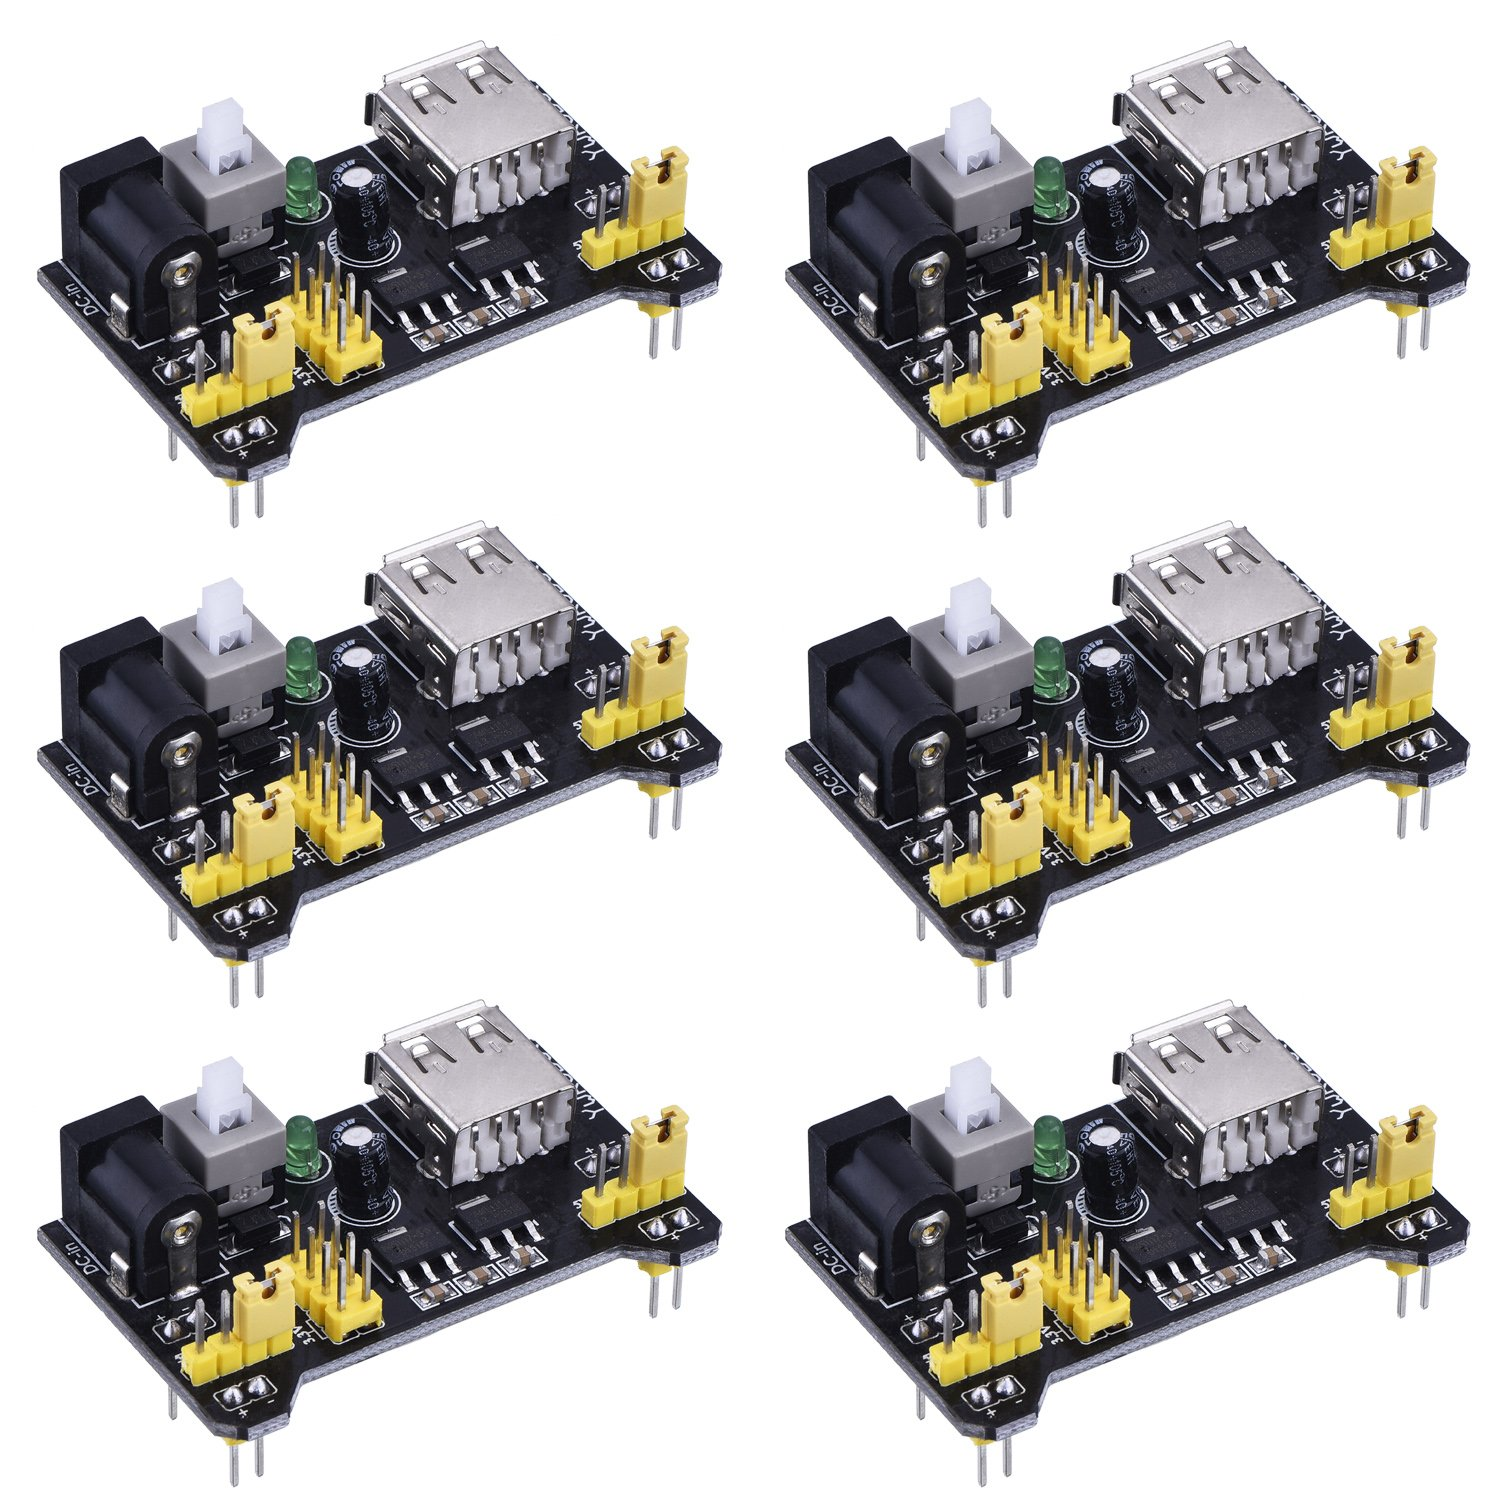 6 Pack Breadboard Power Supply Module For Arduino Board Amazonco 12 Fixing The On Site Electronics